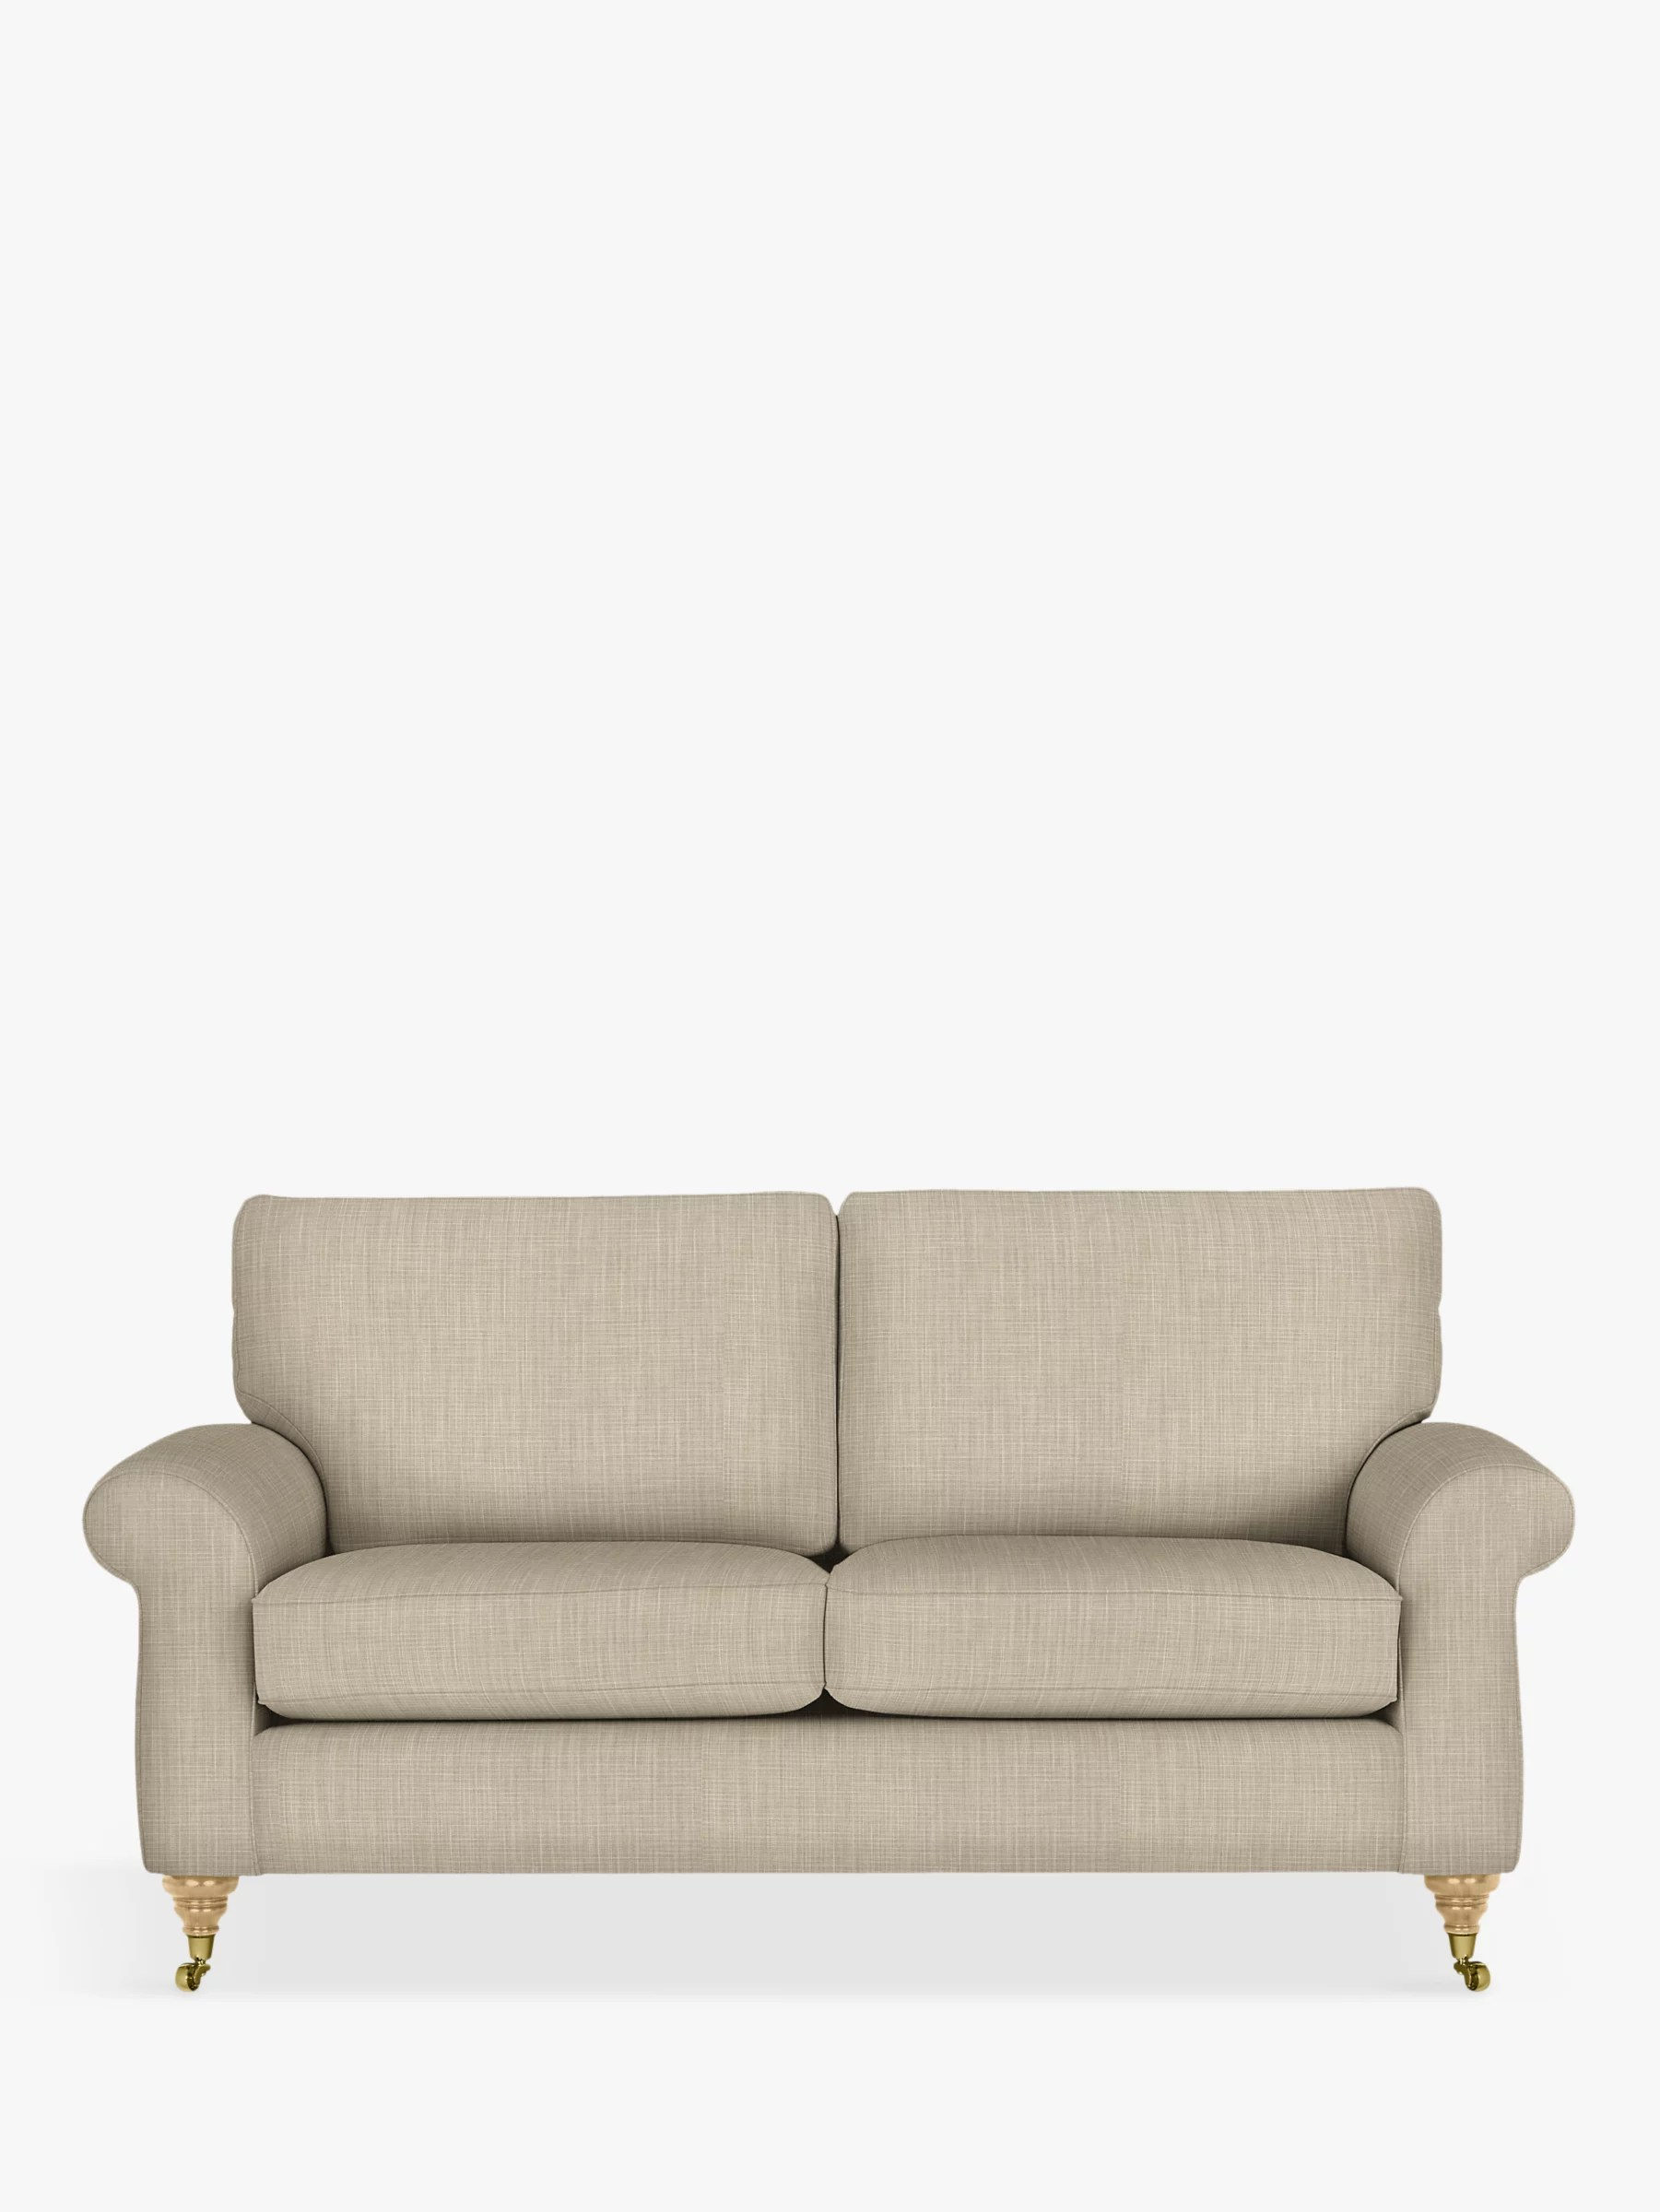 bolia outlet sofa crumpet dimensions hannah by haute living thesofa